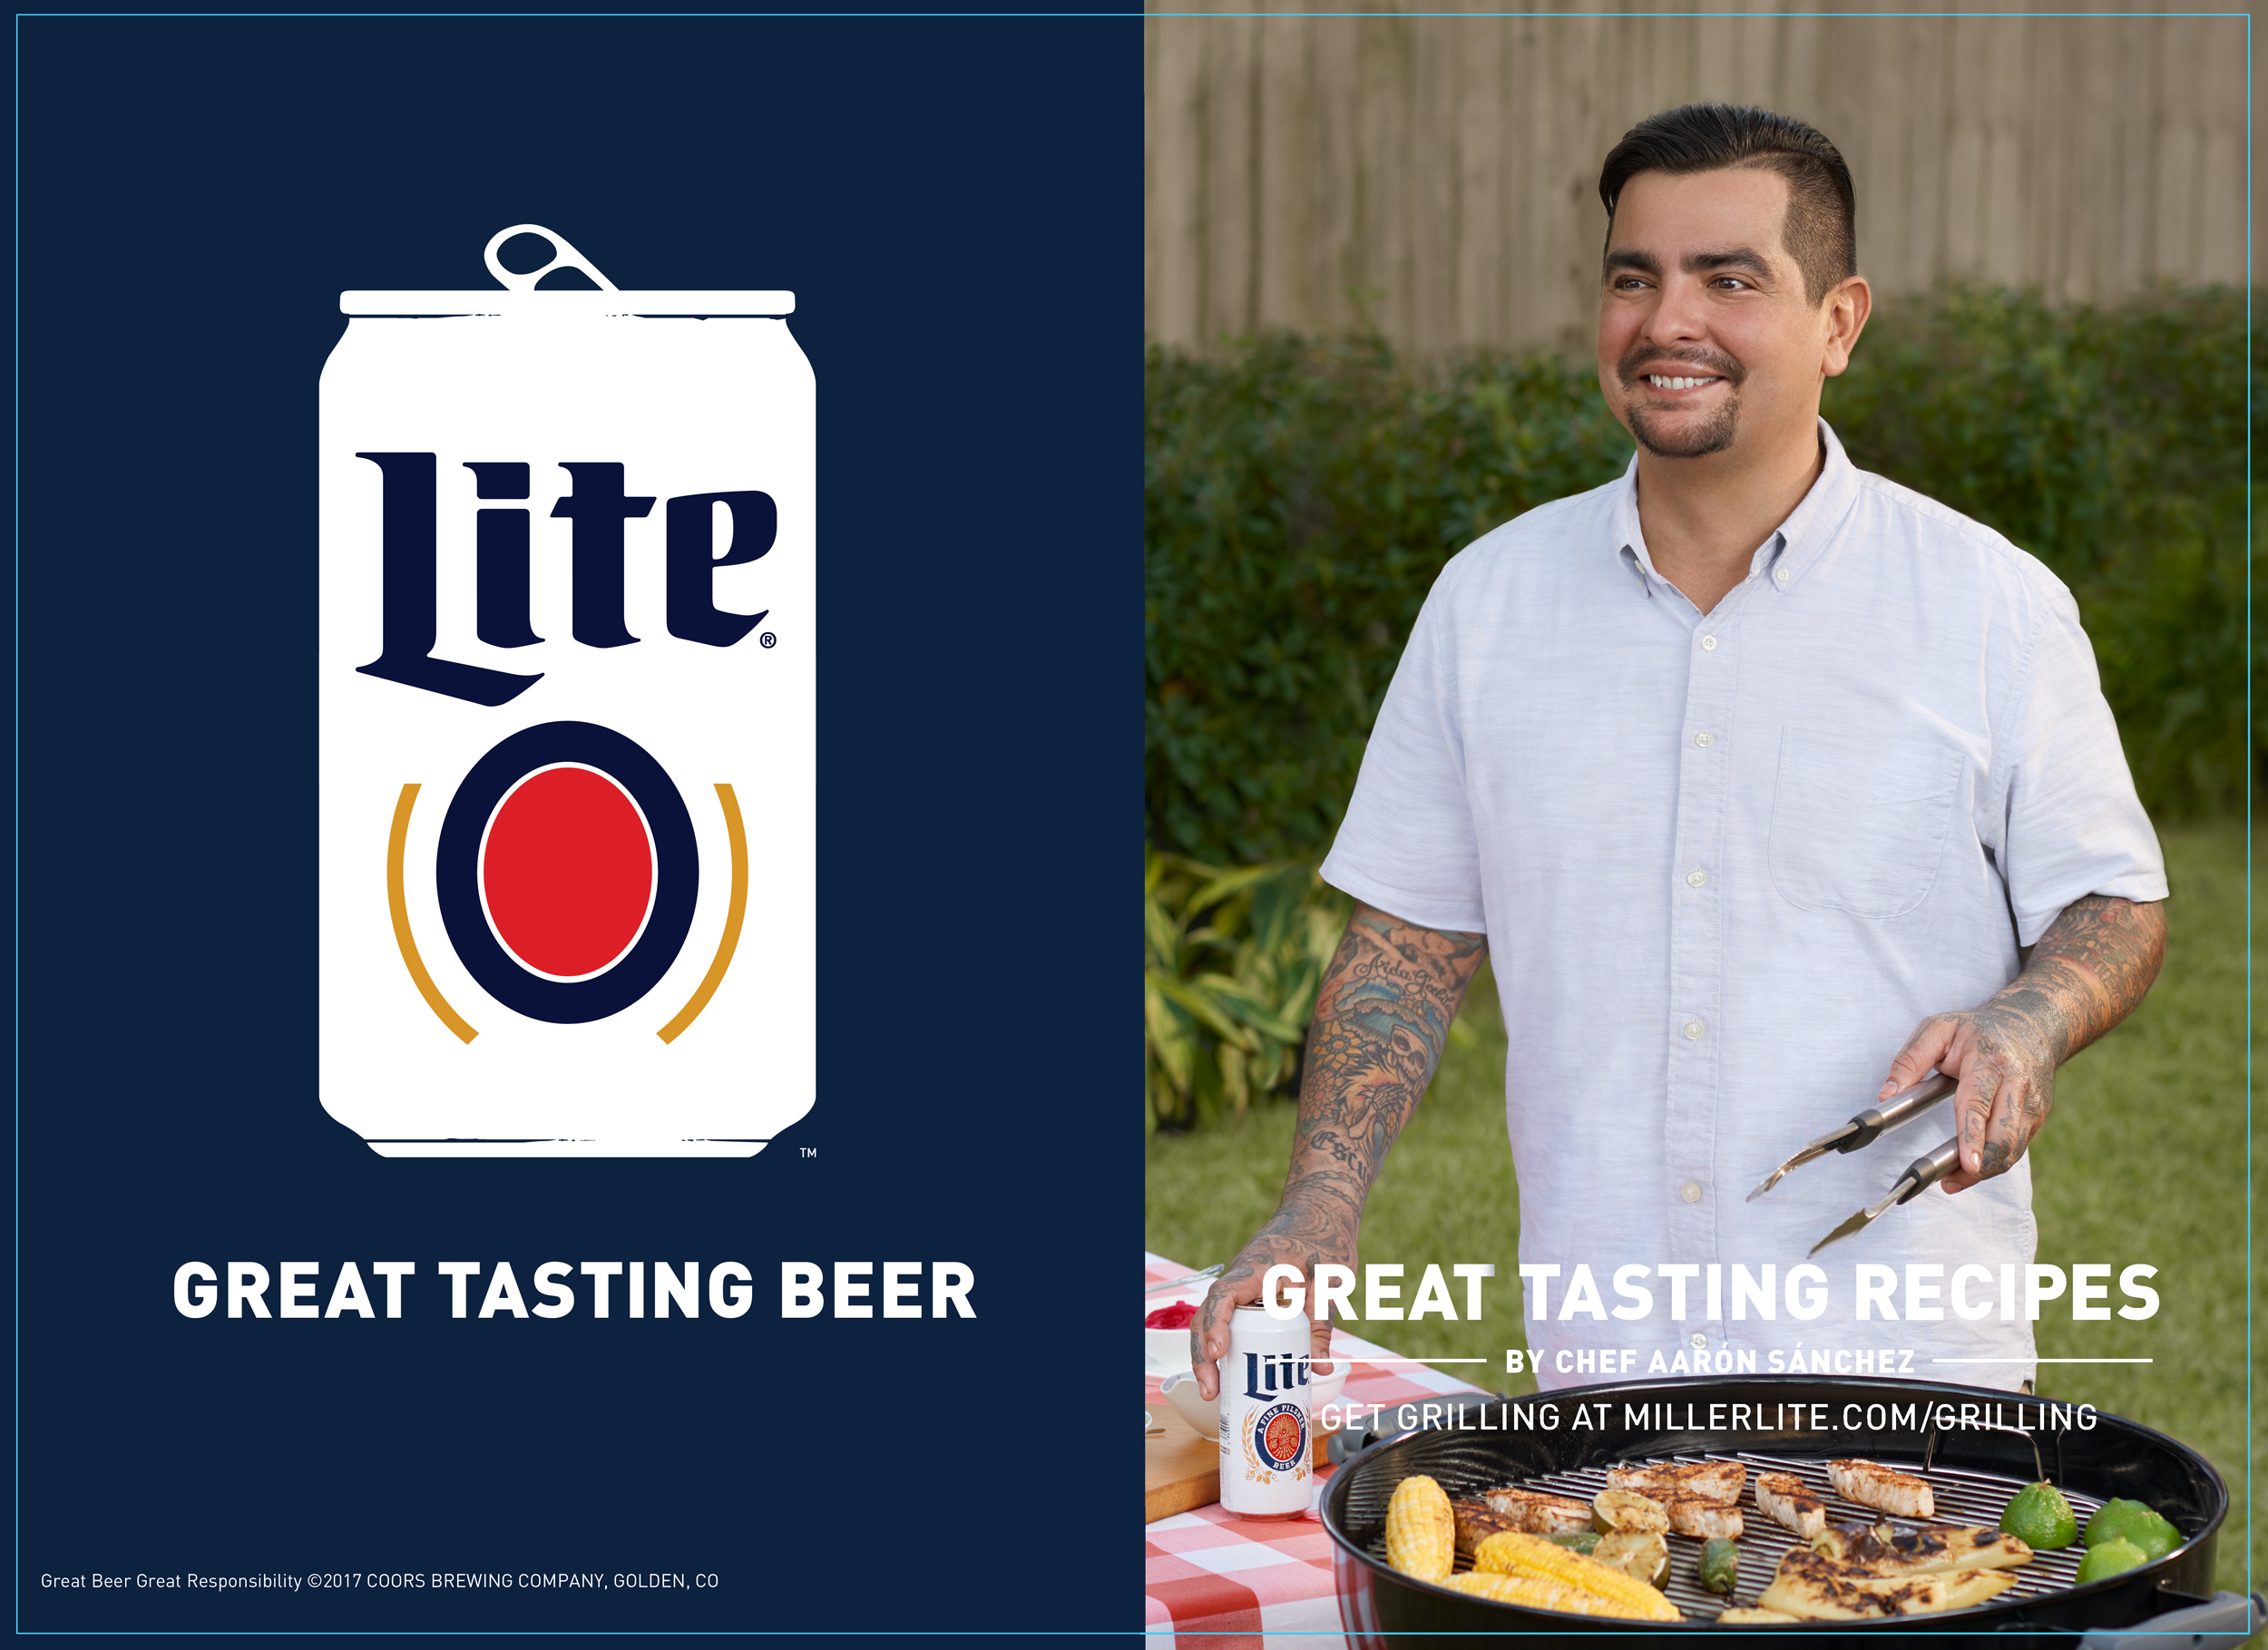 MillerLite advertisement photographed by New Orleans based photographer Craig Mulcahy. The commercial features celebrity chef Aaron Sanchez.